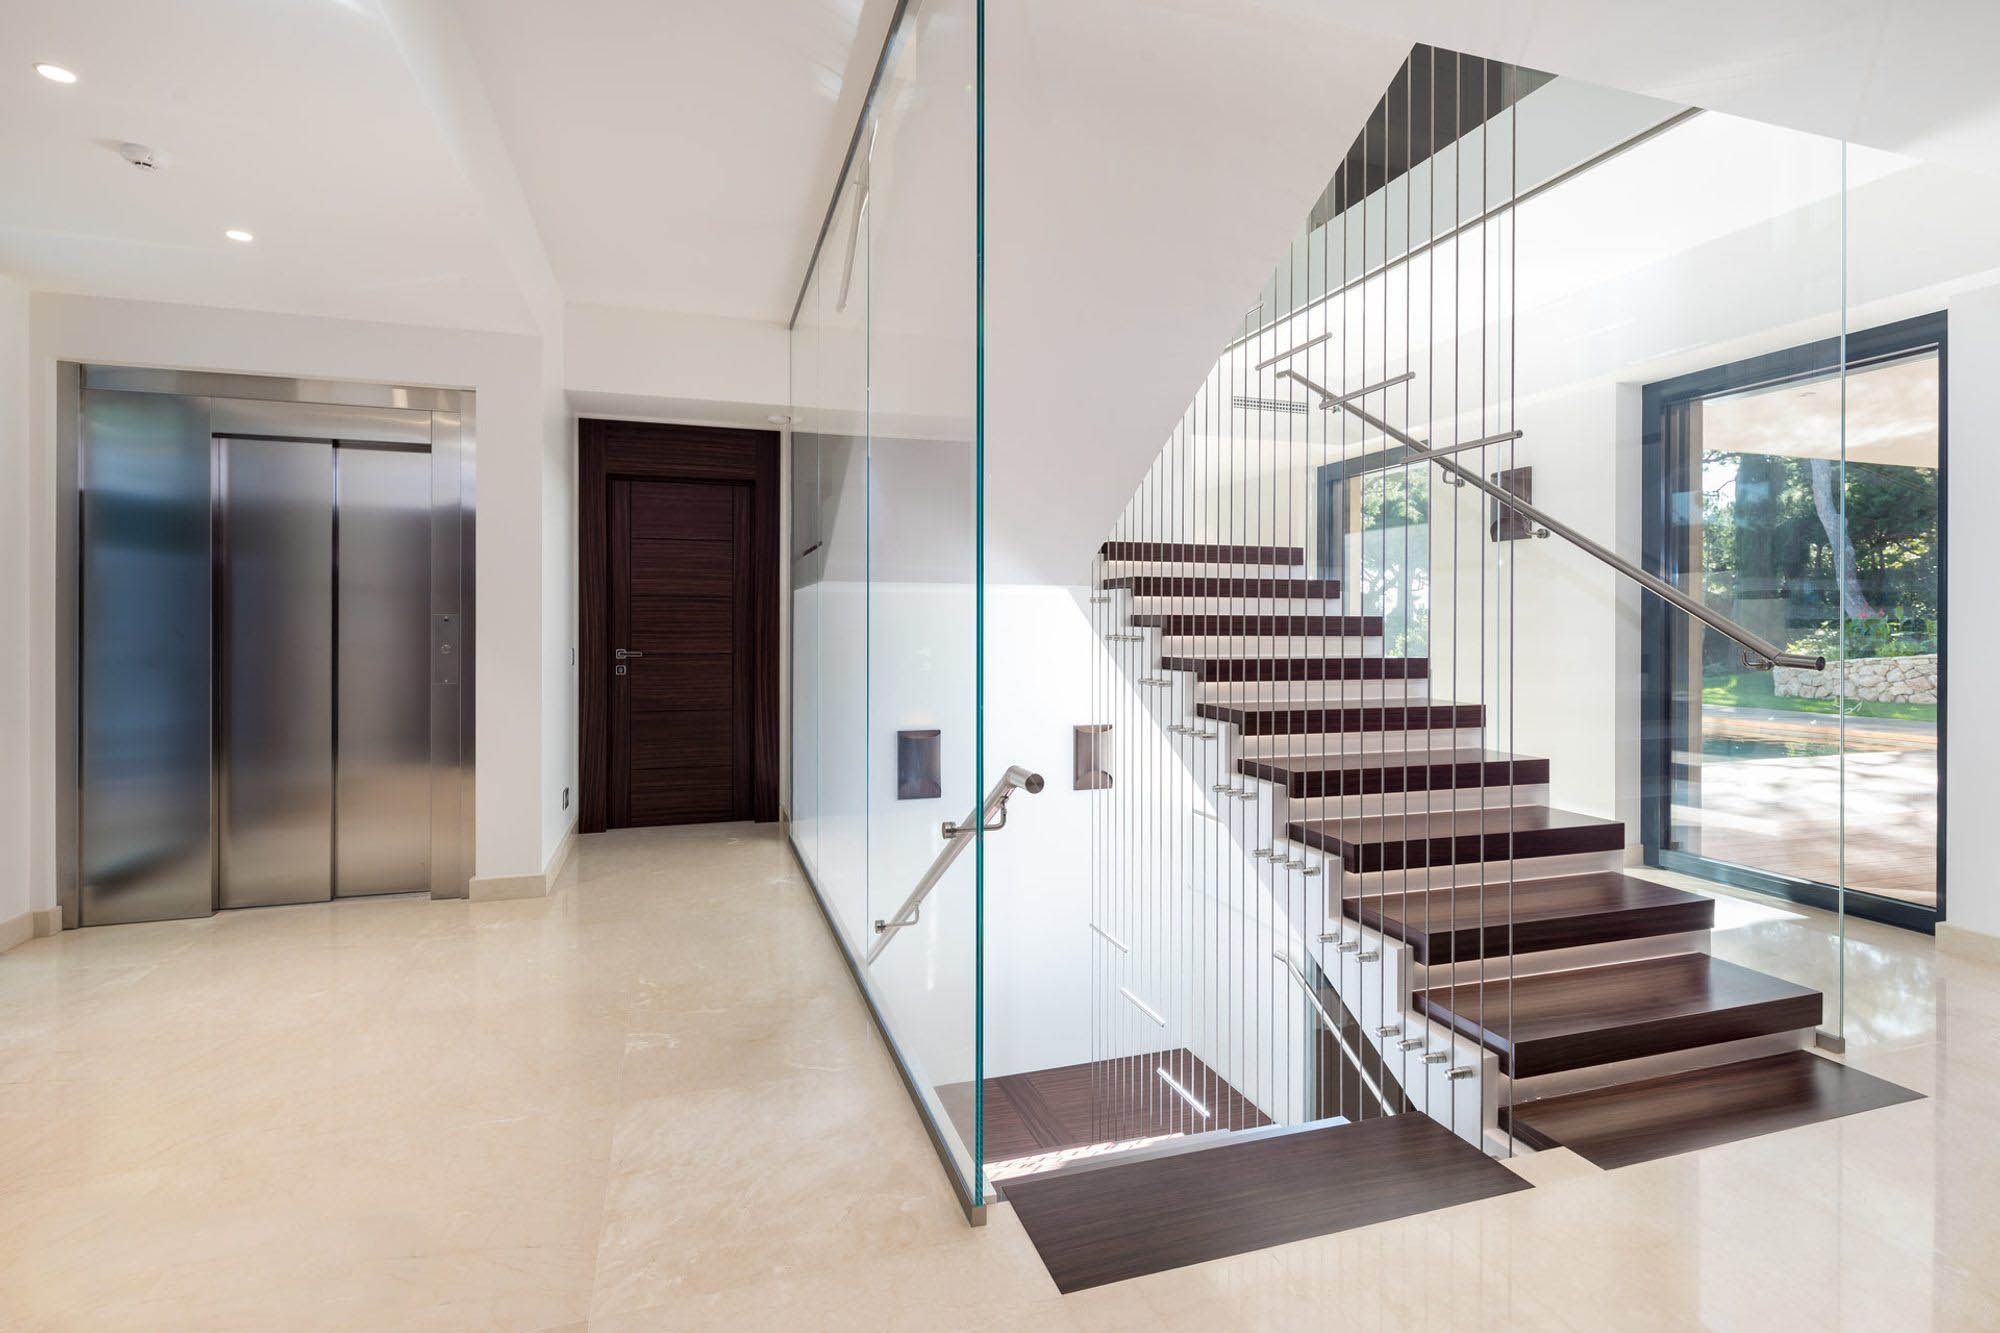 Modern Staircase Design Contemporary Stair Design Ideas   White And Glass Staircase   Step   Before And After   Handrail   Stained   Oak